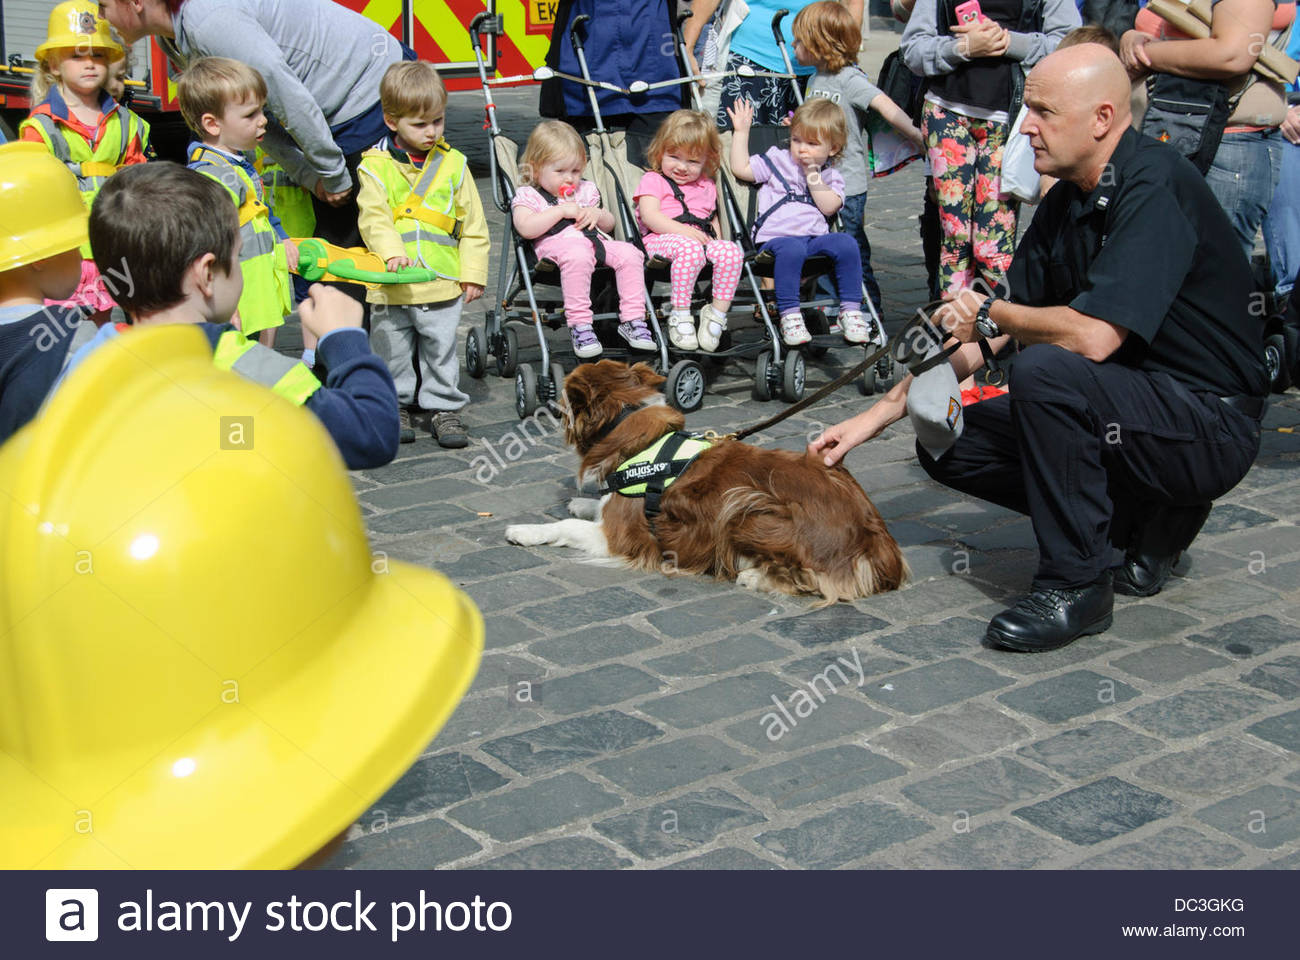 Falkirk, UK on Thursday, August 8, 2013. Fire Investigation dog Jay introduced to some children before a demonstration - Stock Image